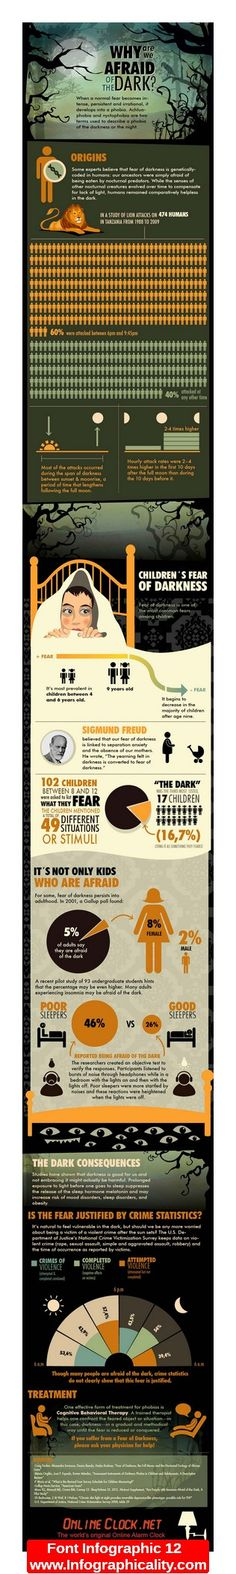 Why are we Afraid of the Dark? infographic I don't like how many icons they used in it